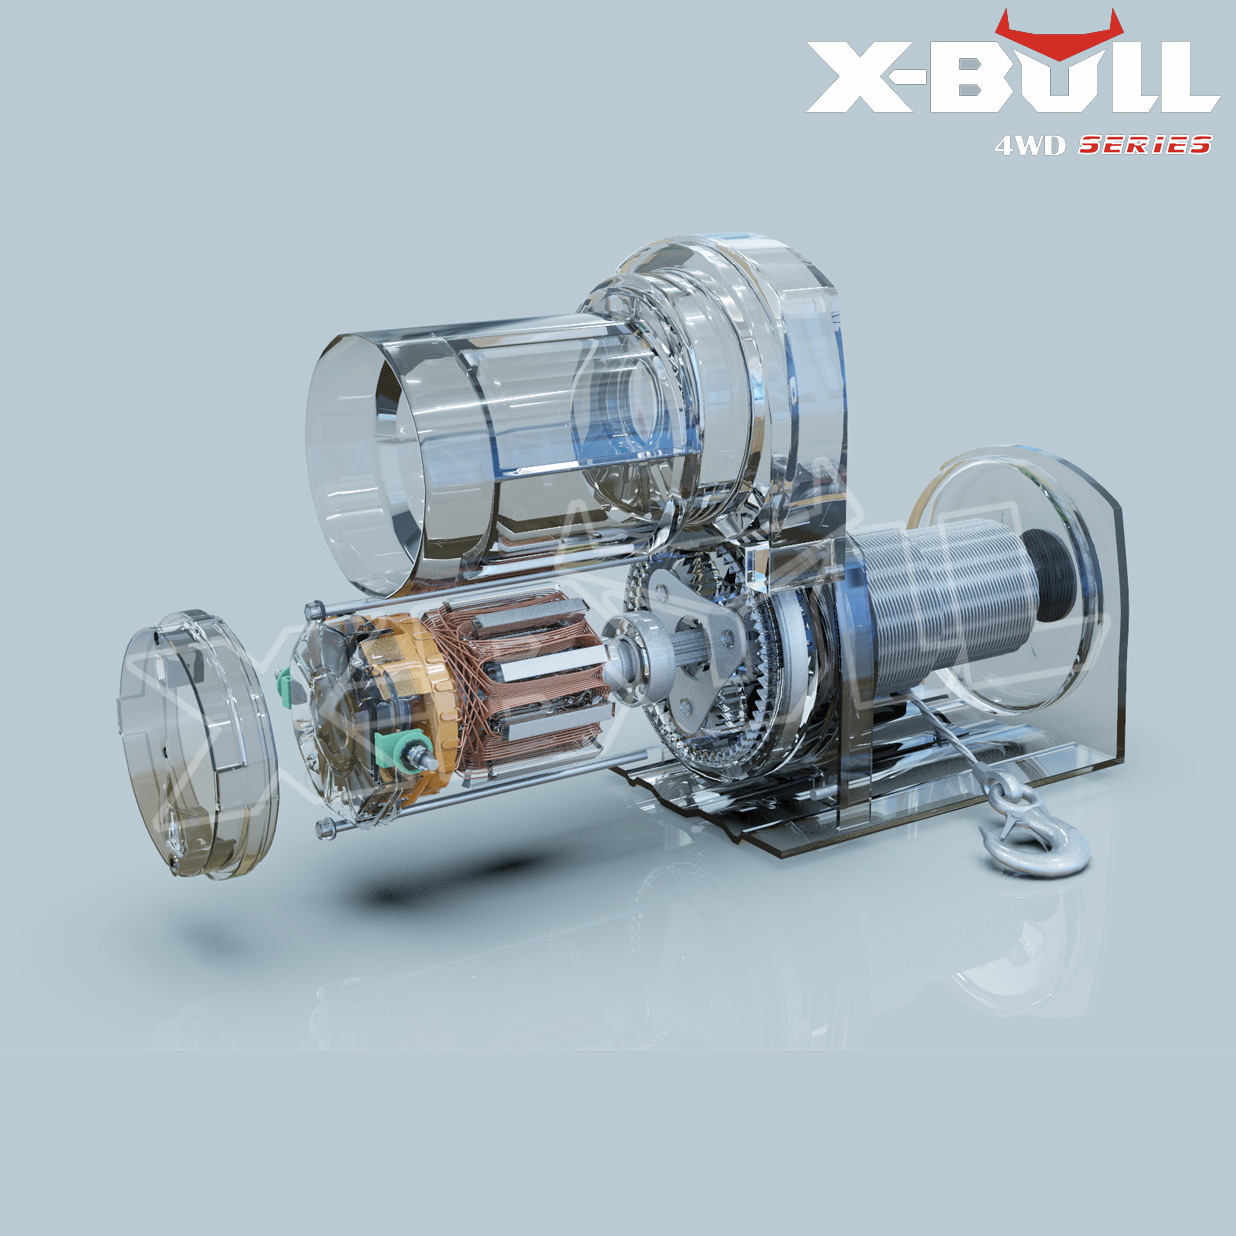 X-BULL 3000LBS /1361KGS Electric Winch Synthetic Rope 12V 10M Wireless ATV 4WD 4